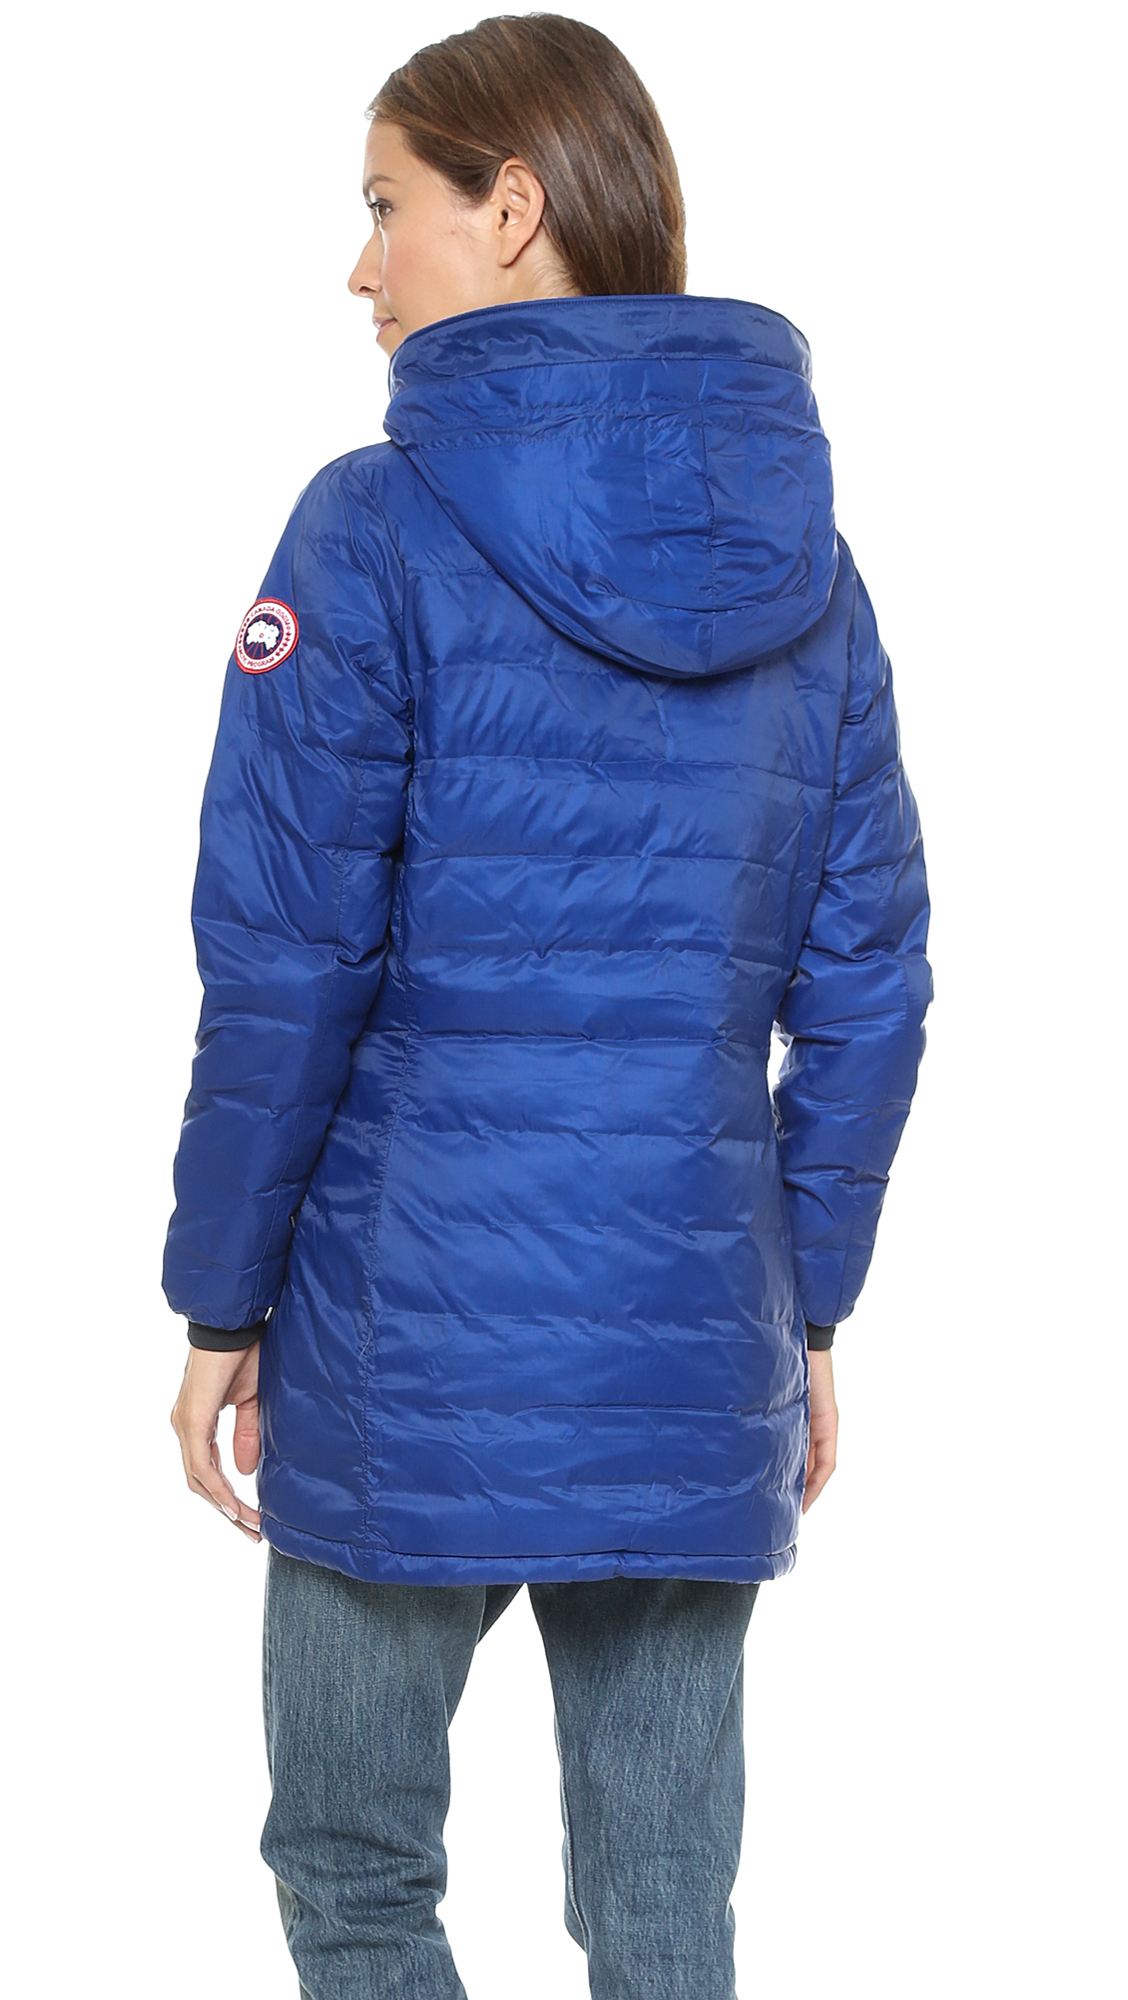 Pacific Blue Canada Goose Jacket